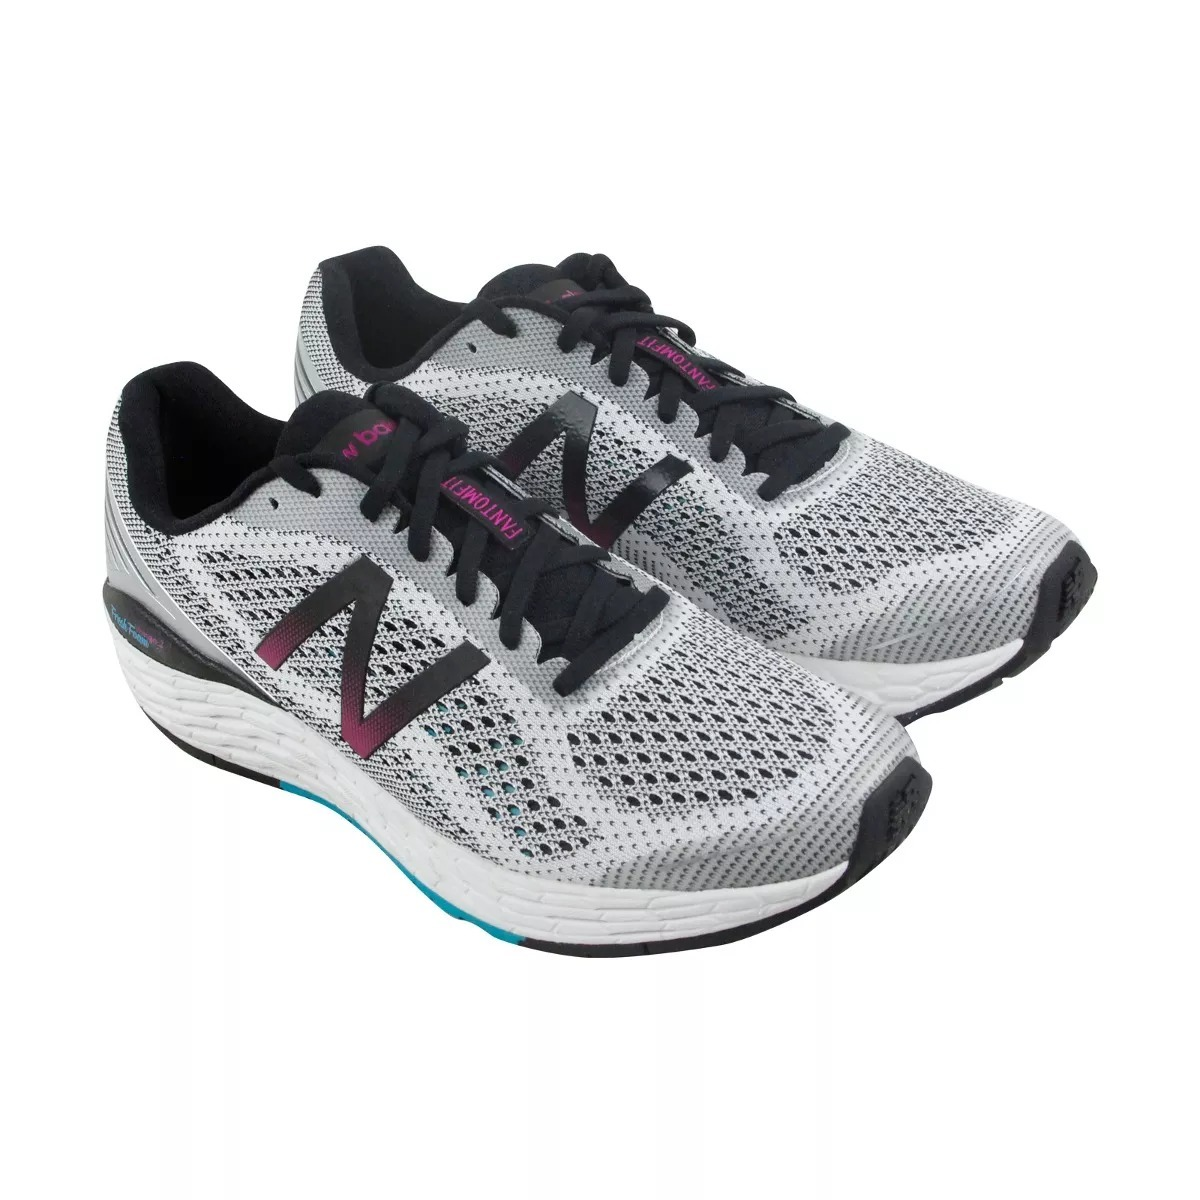 394e8a8d58f tenis new balance running course mujer no. wvng0wb2. Cargando zoom.